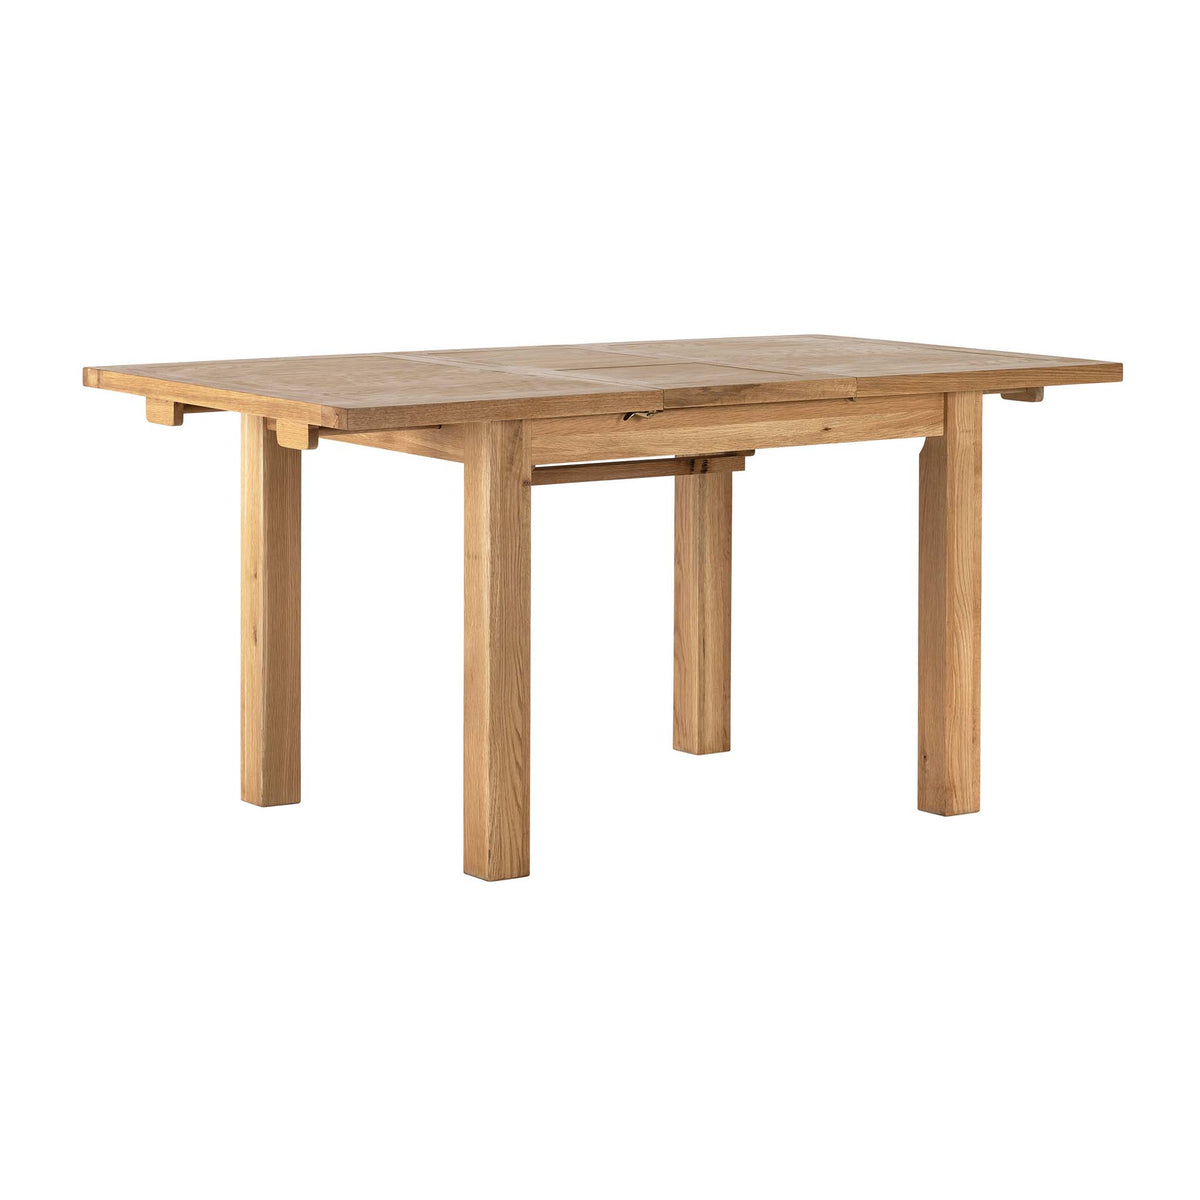 Charlestown Oak Extendable Dining Table by Roseland Furniture